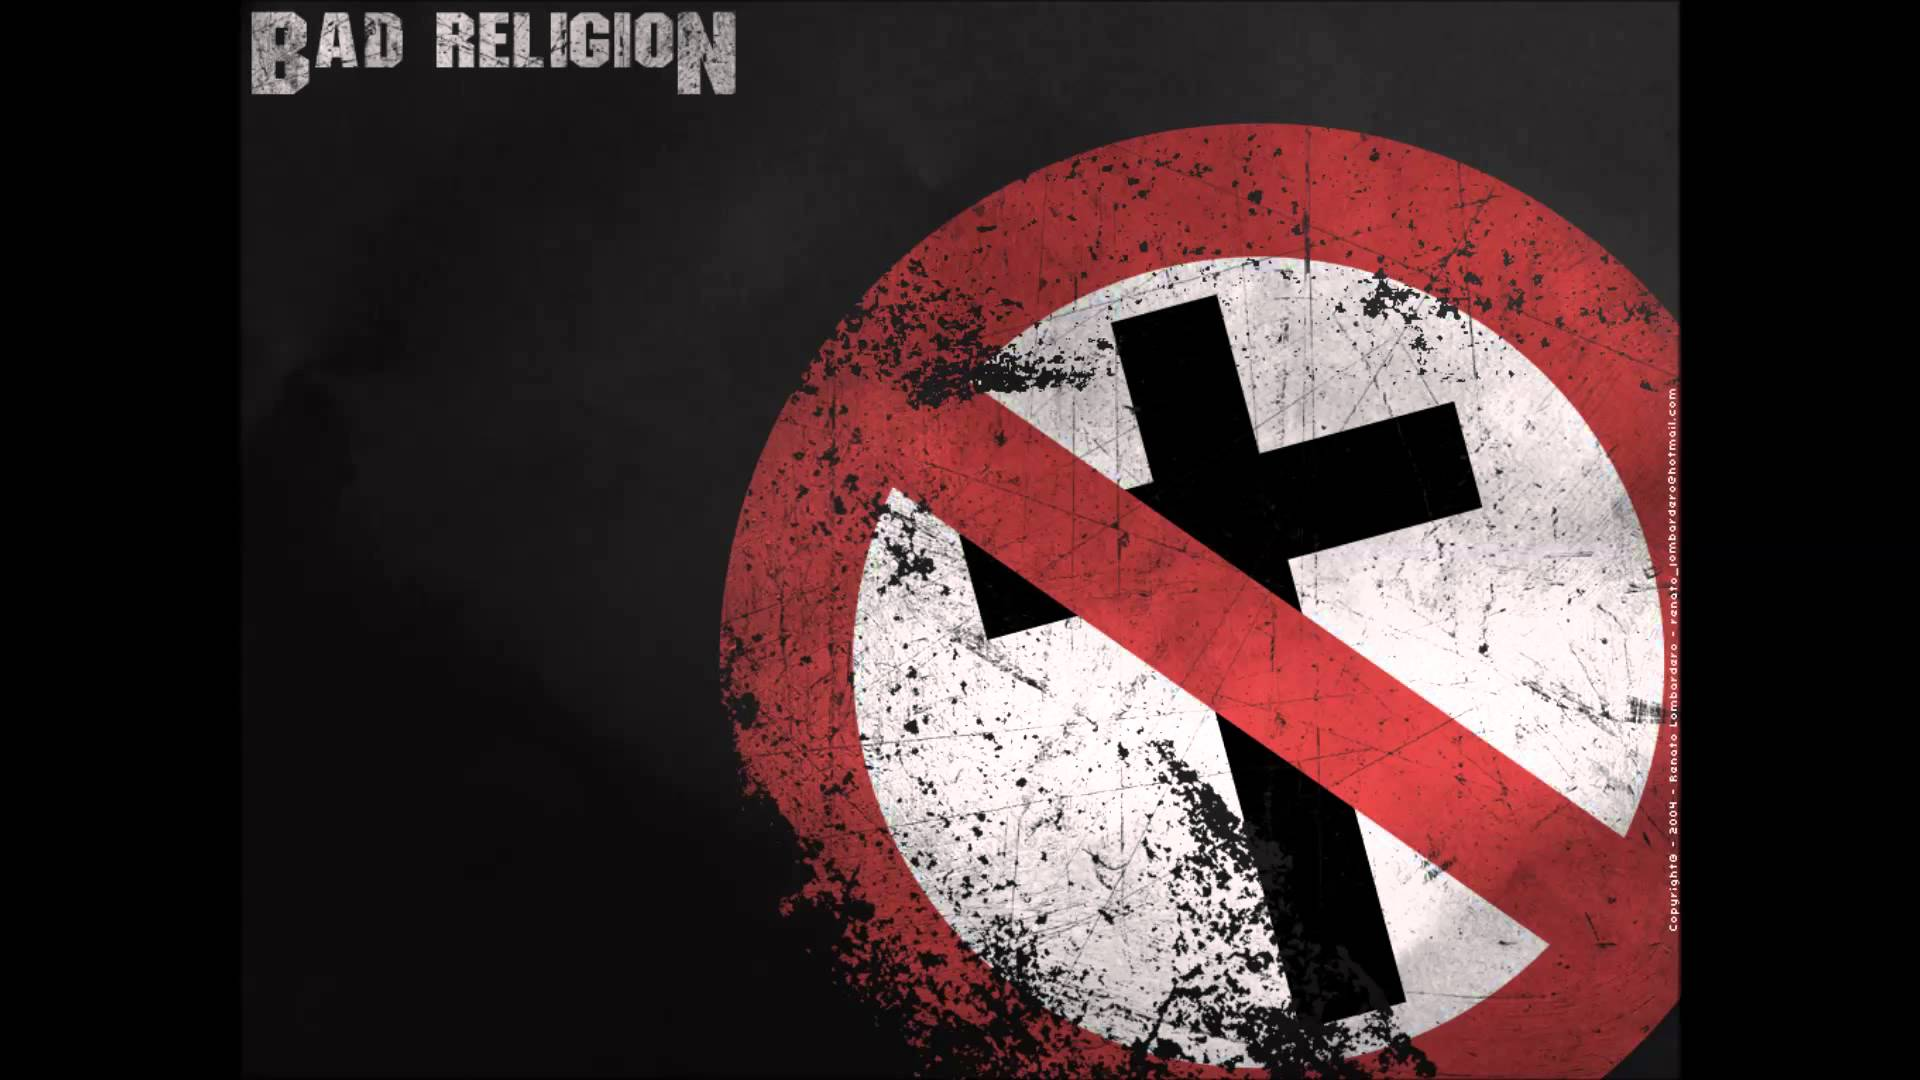 Bad Religion Full HD Wallpaper 1920x1080 & Bad Religion Wallpapers Pictures Images